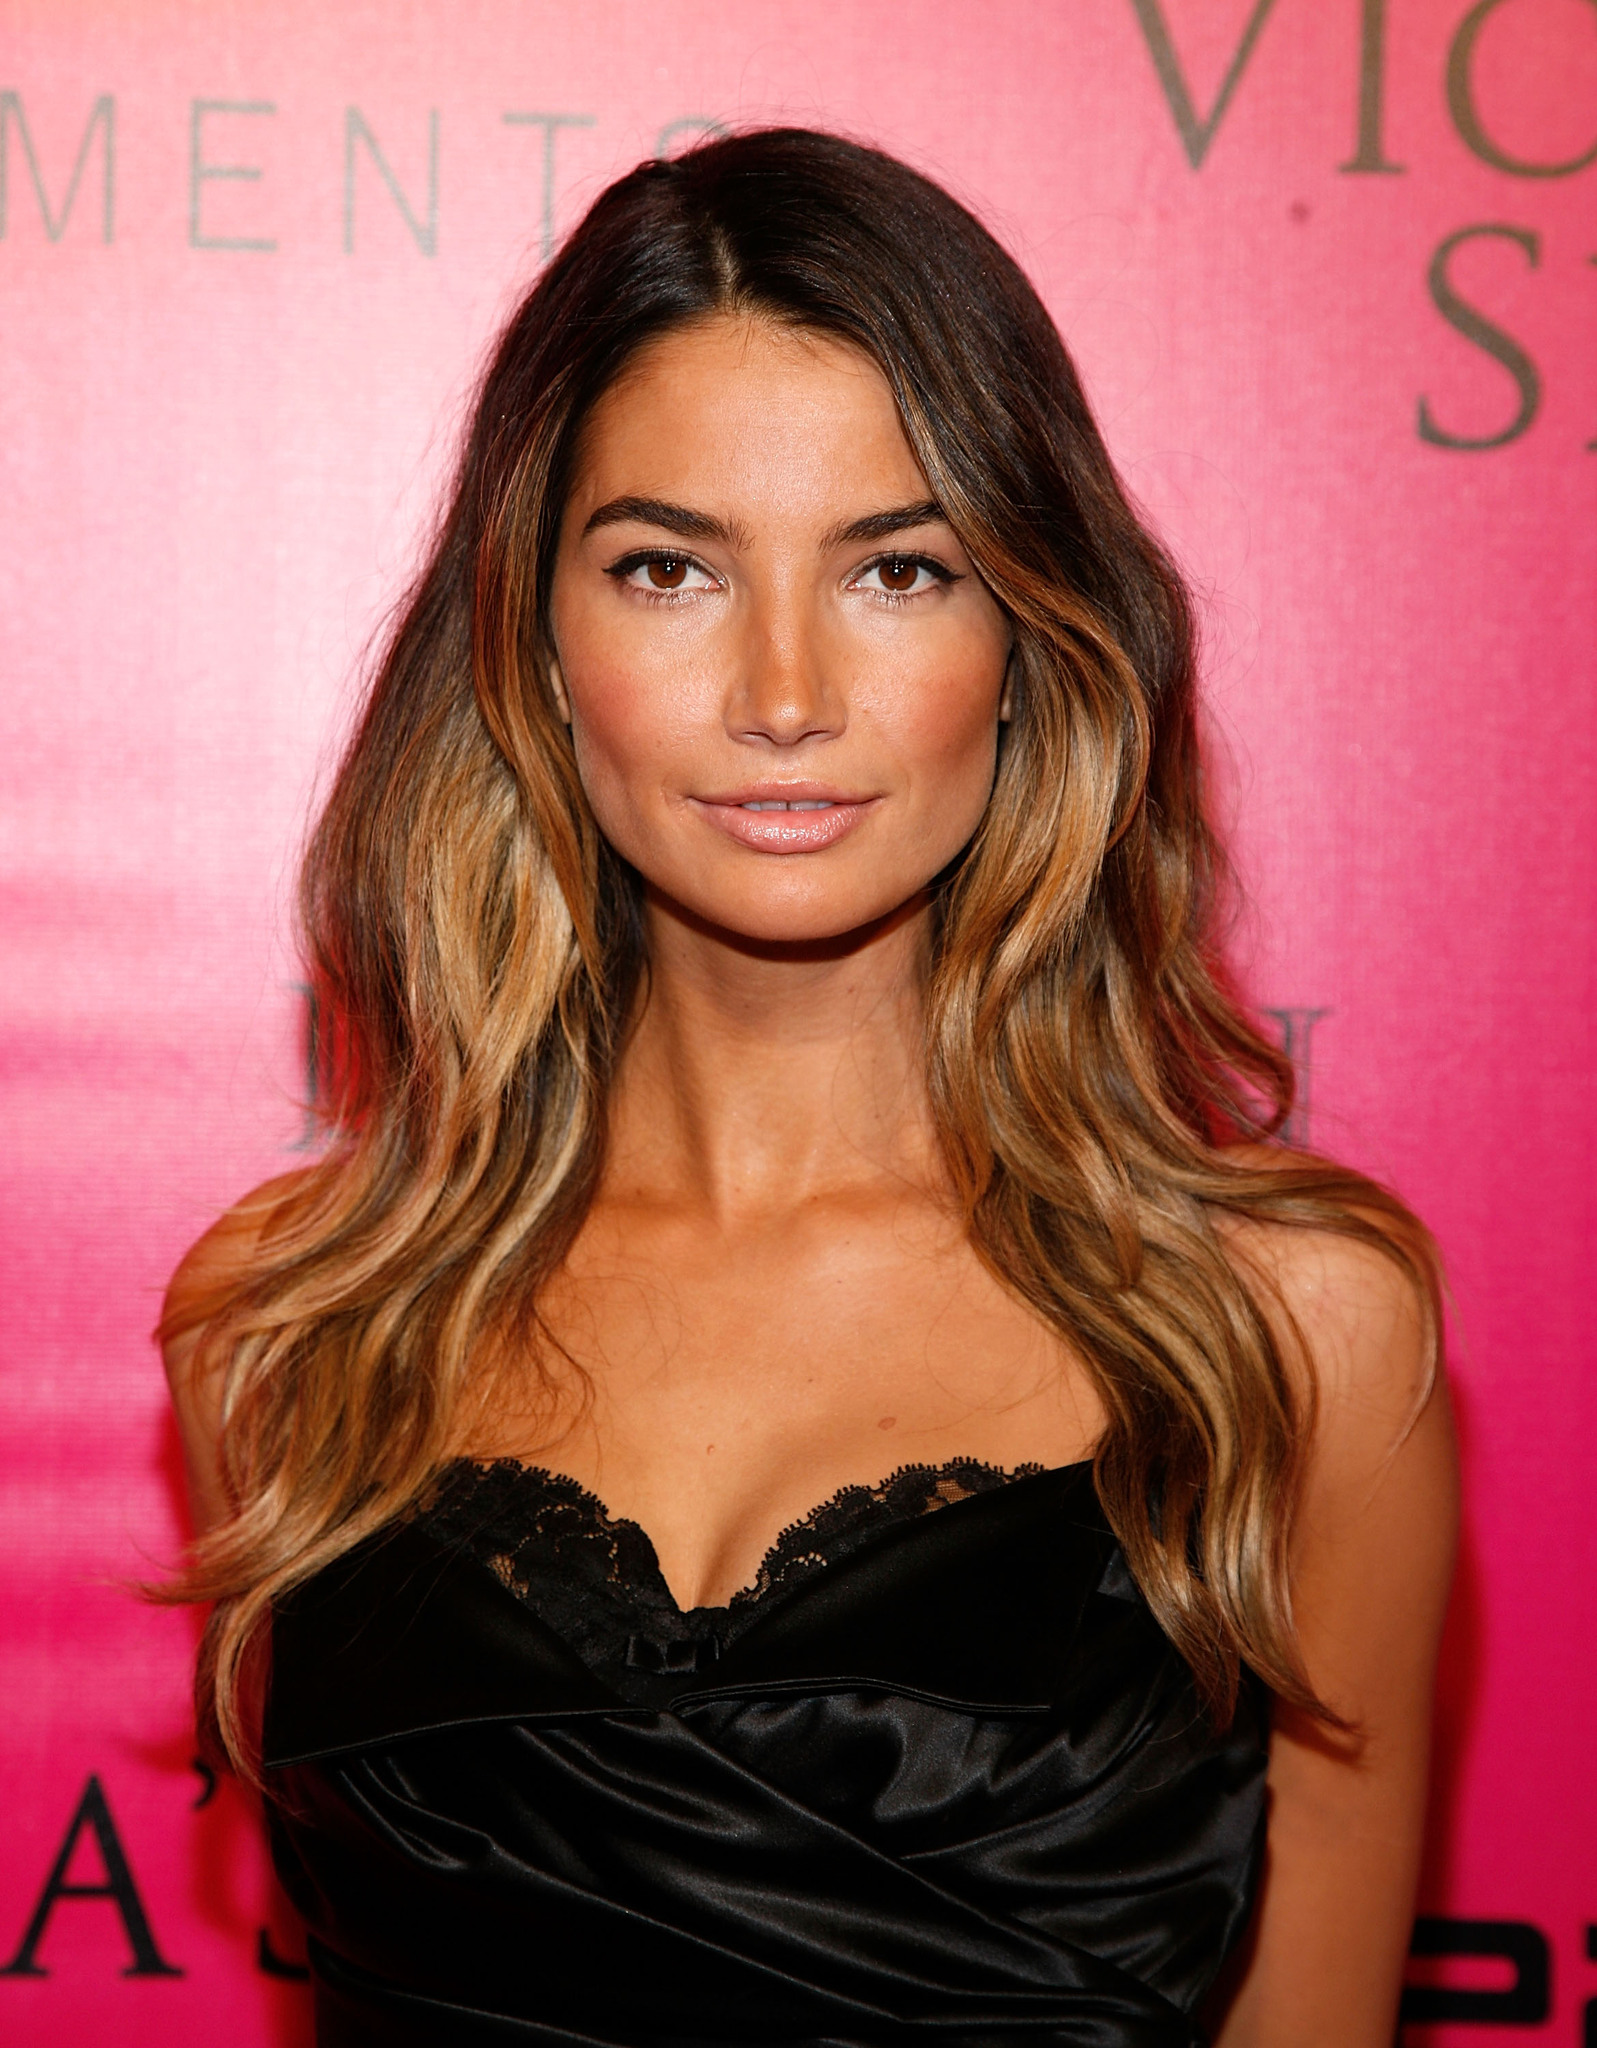 nudes Lily Aldridge (56 images) Cleavage, Twitter, in bikini